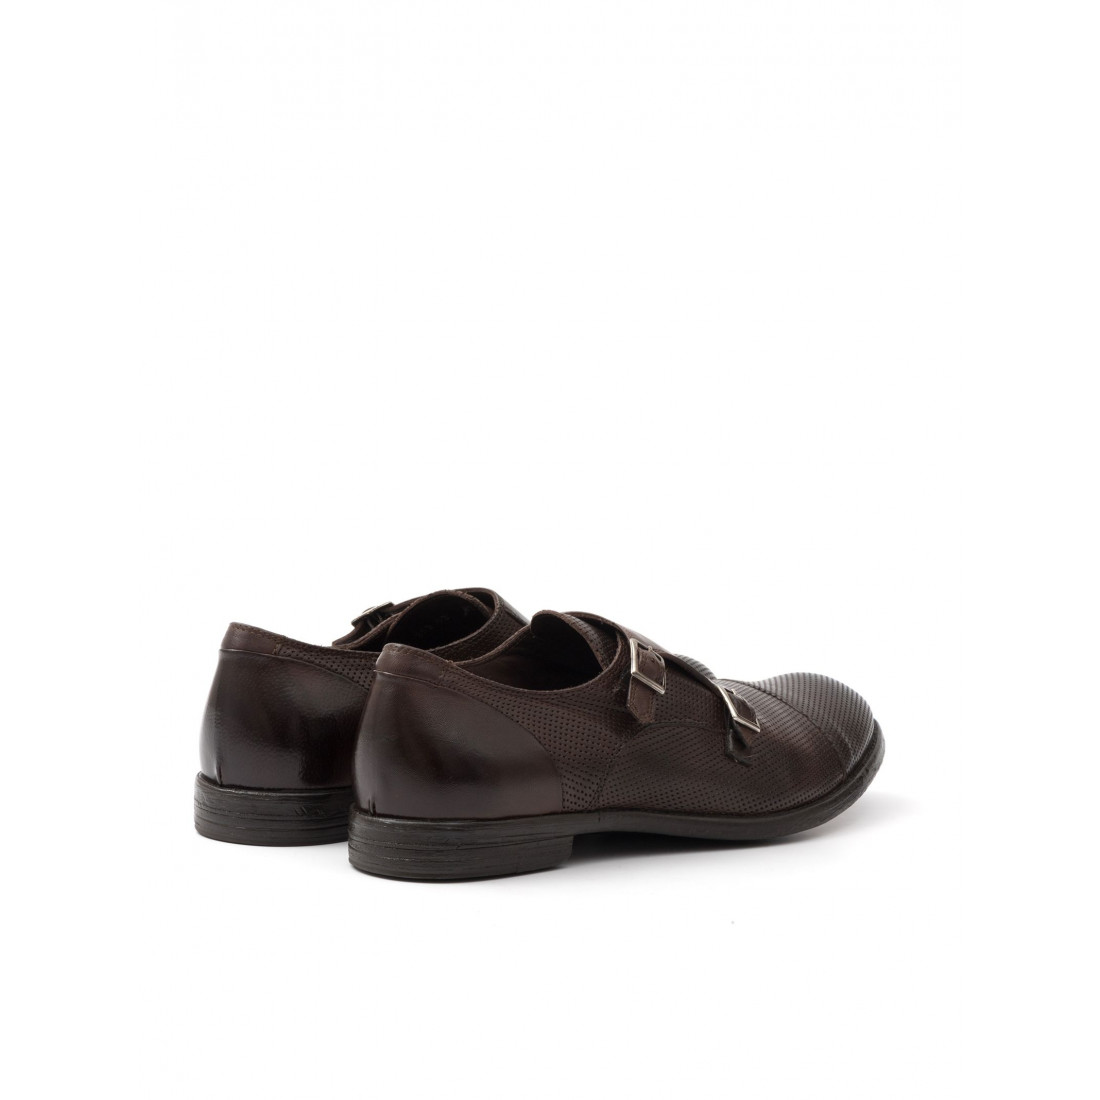 monk straps man hundred m 283  03 tuffato tdm 1126